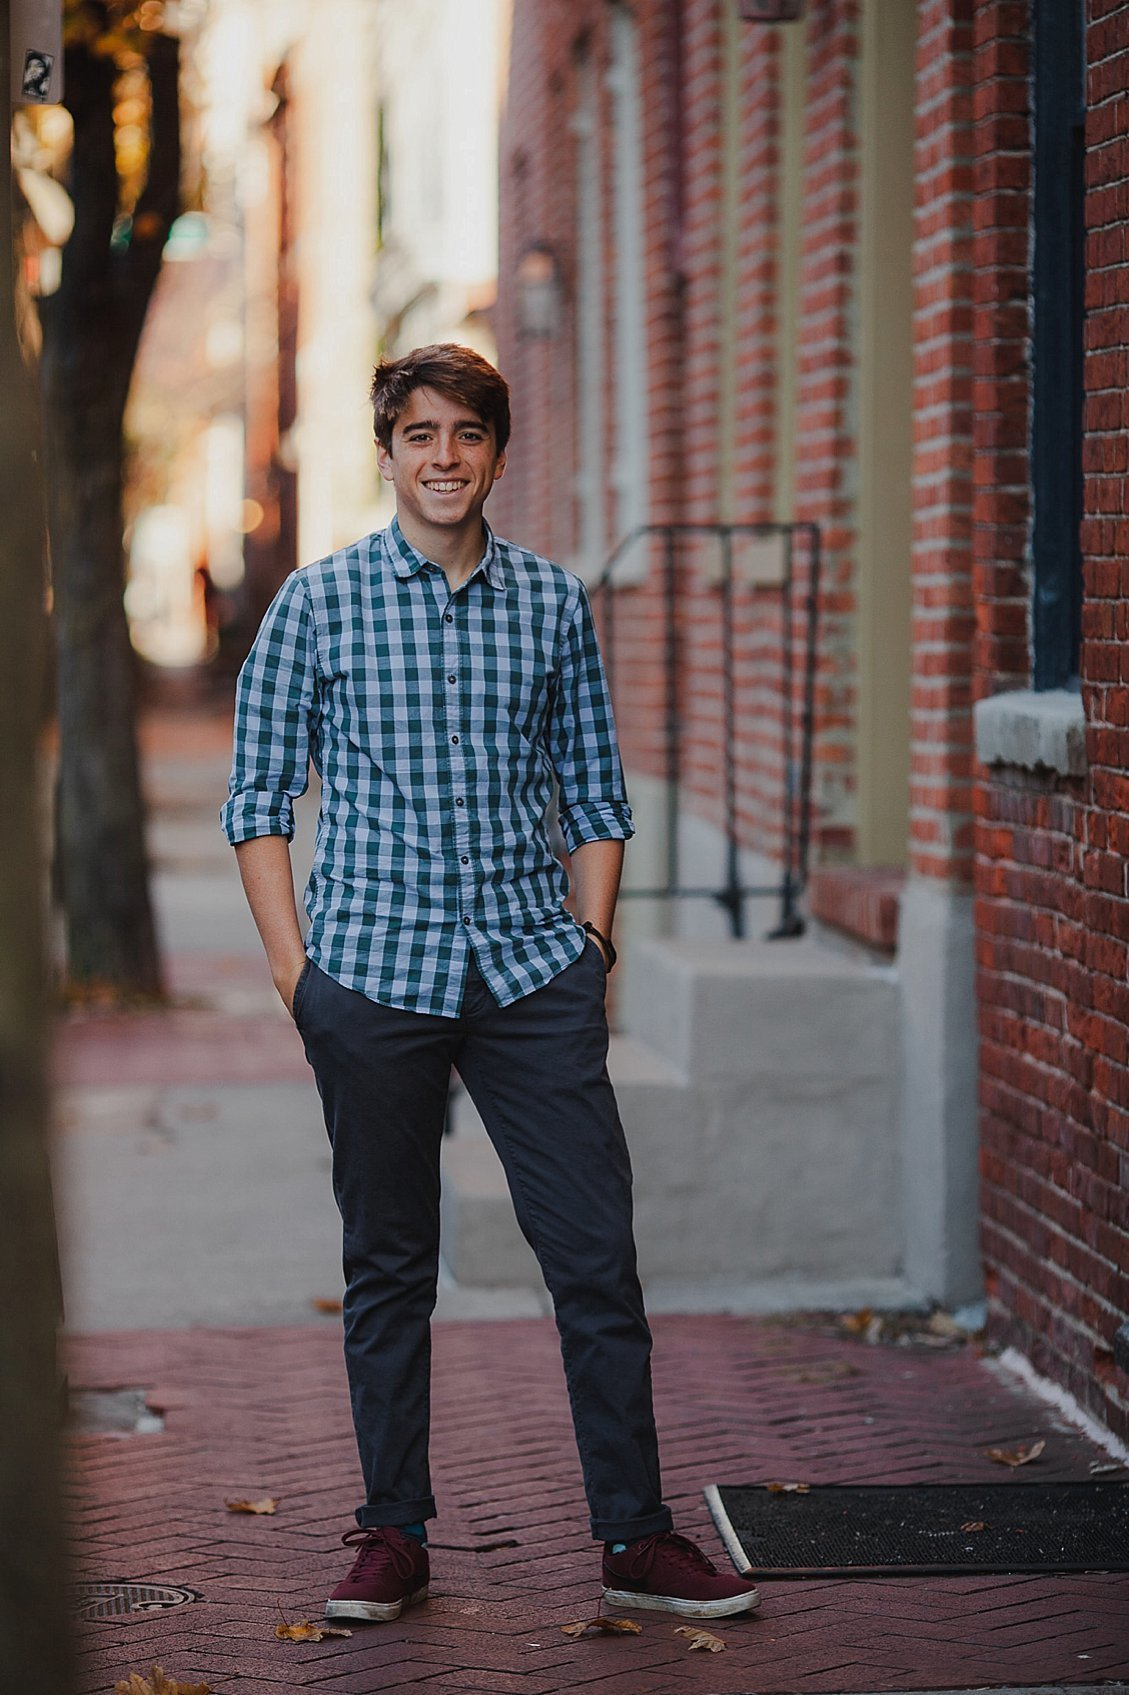 21baltimore-highschool-senior-guy-street-urban-fashion-fall